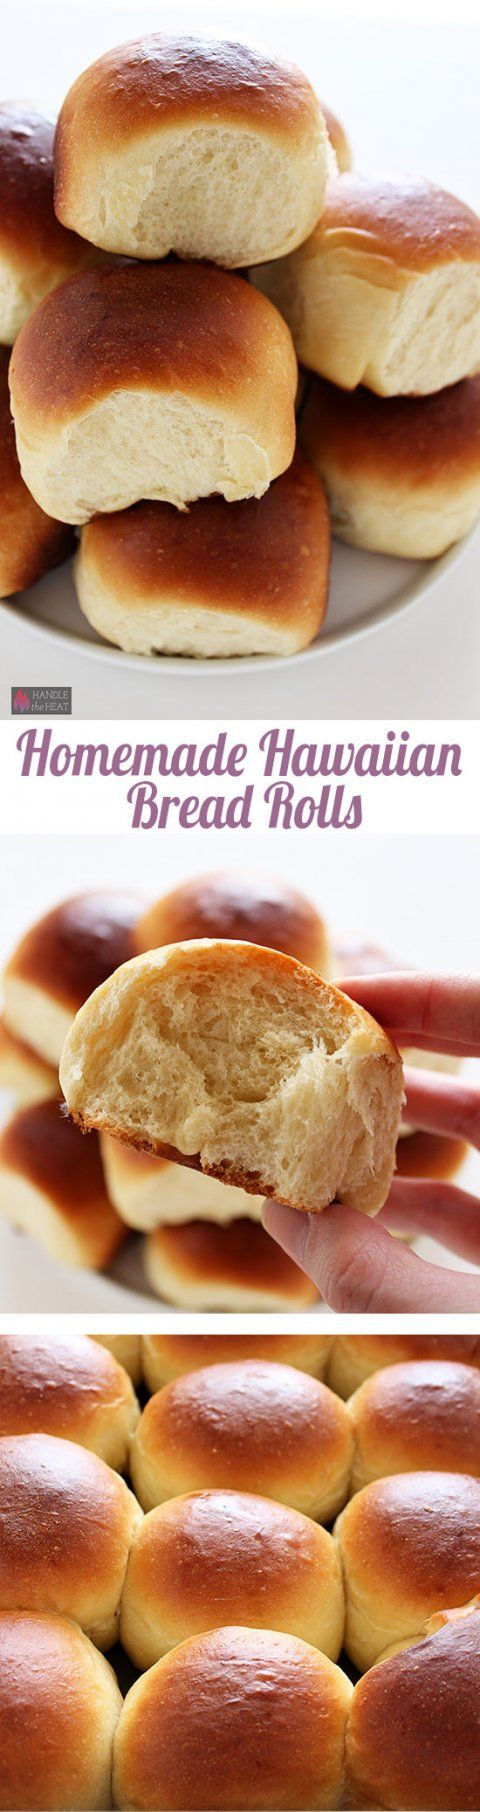 Homemade Hawaiian Bread Rolls - perfect copycat recipe!! ( I have to try these! I love all the freezing options.)